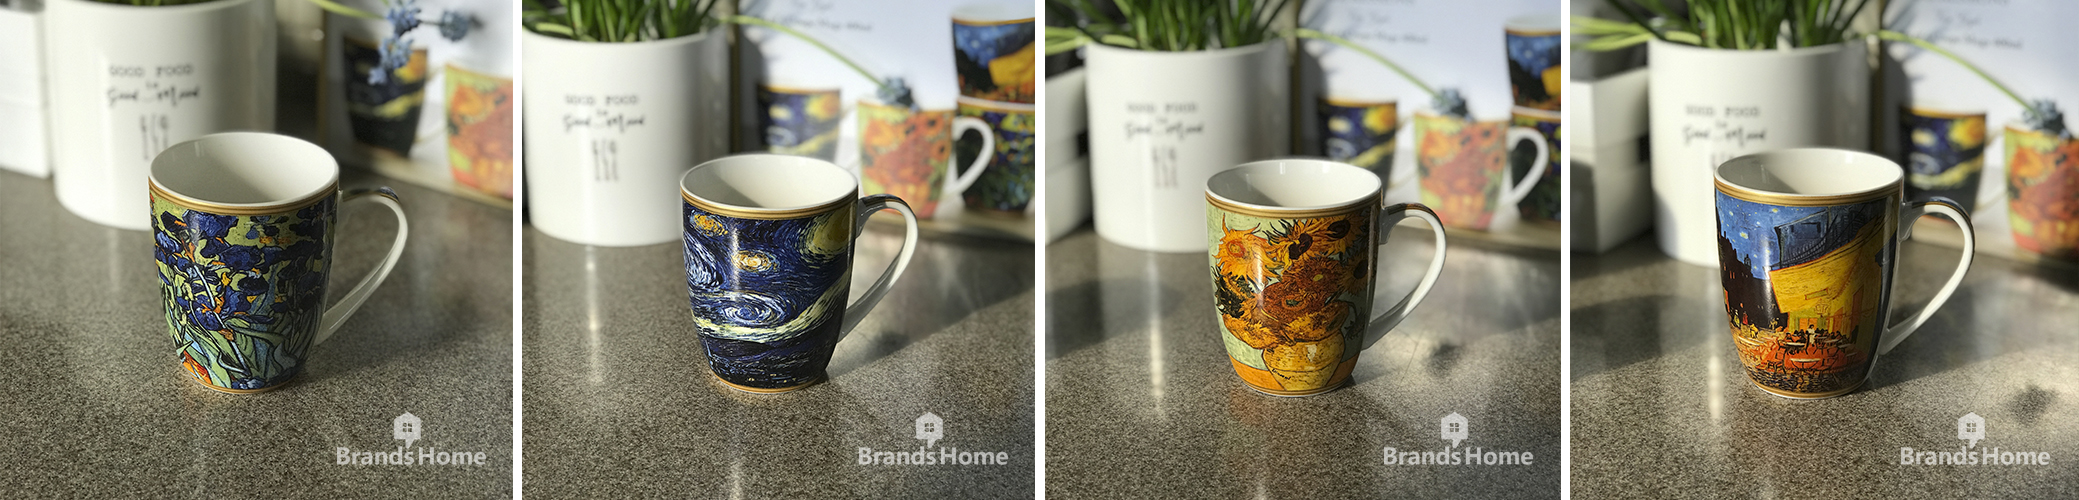 https://brandshome-shop.ru/images/upload/vangogh_casa_domani_kupit.jpg